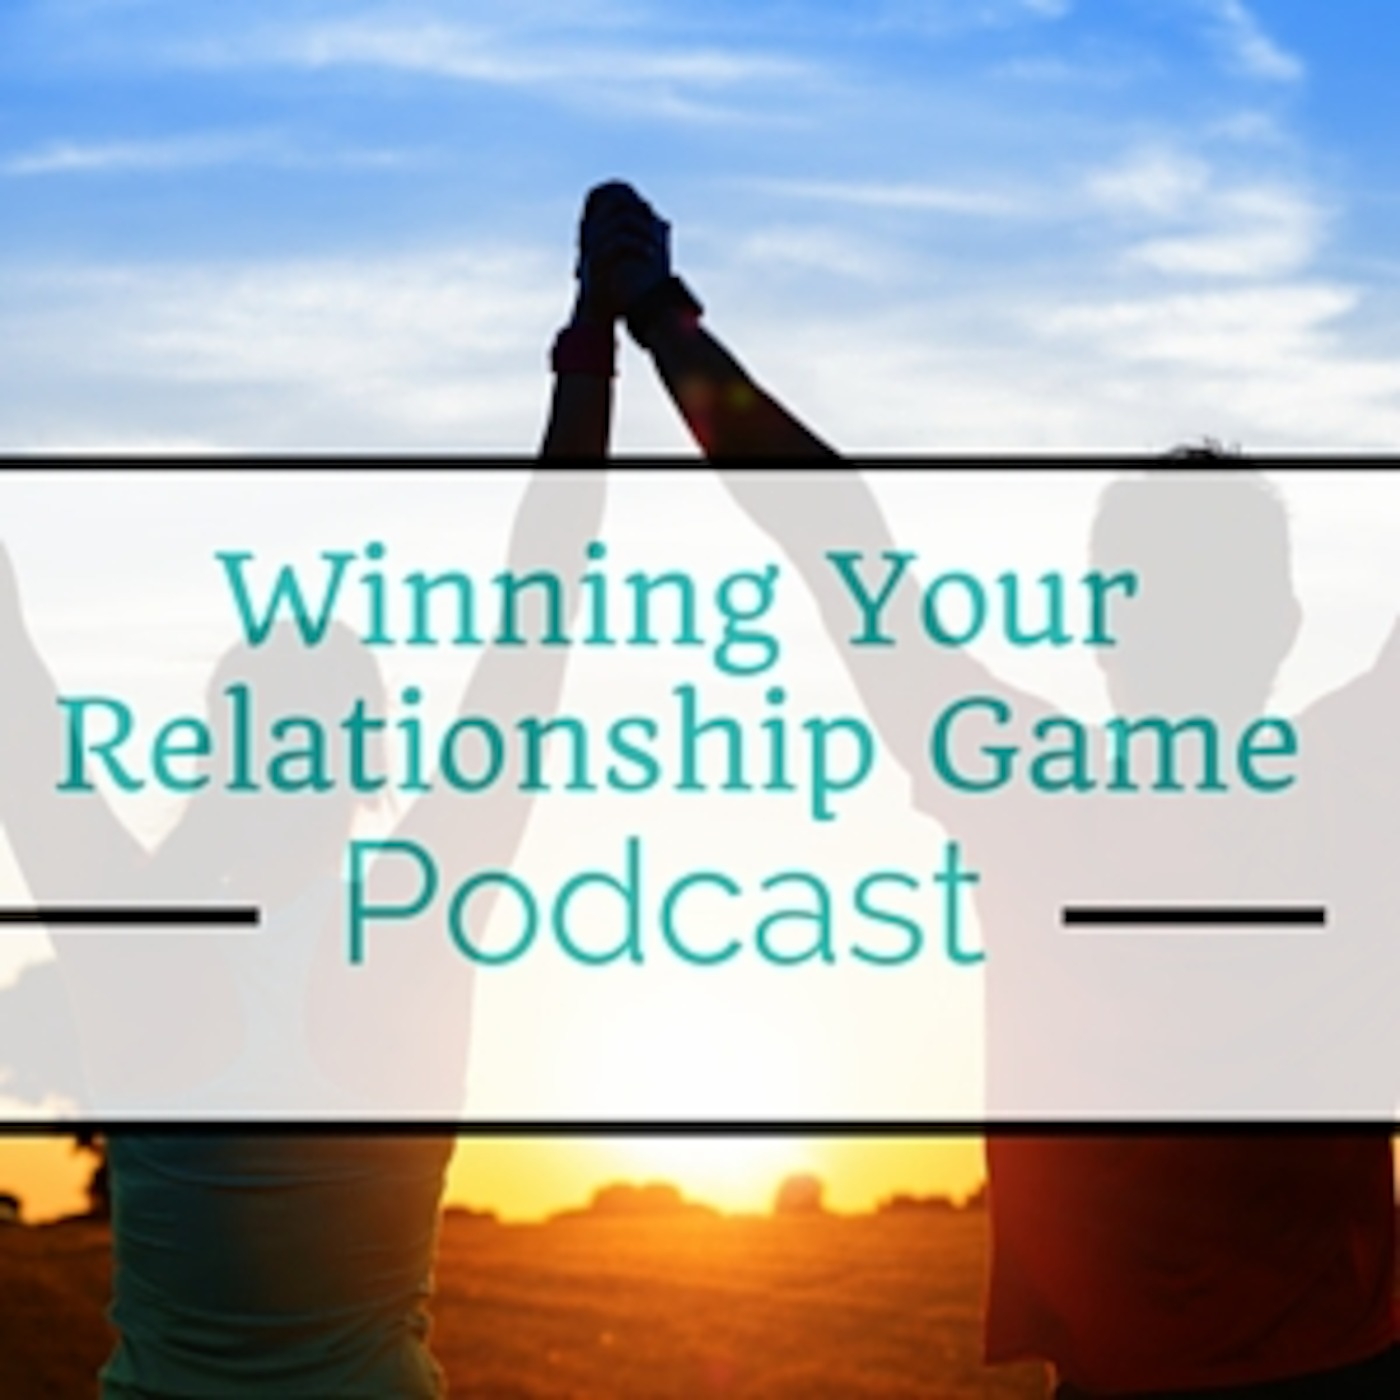 Winning Your Relationship Game Podcast